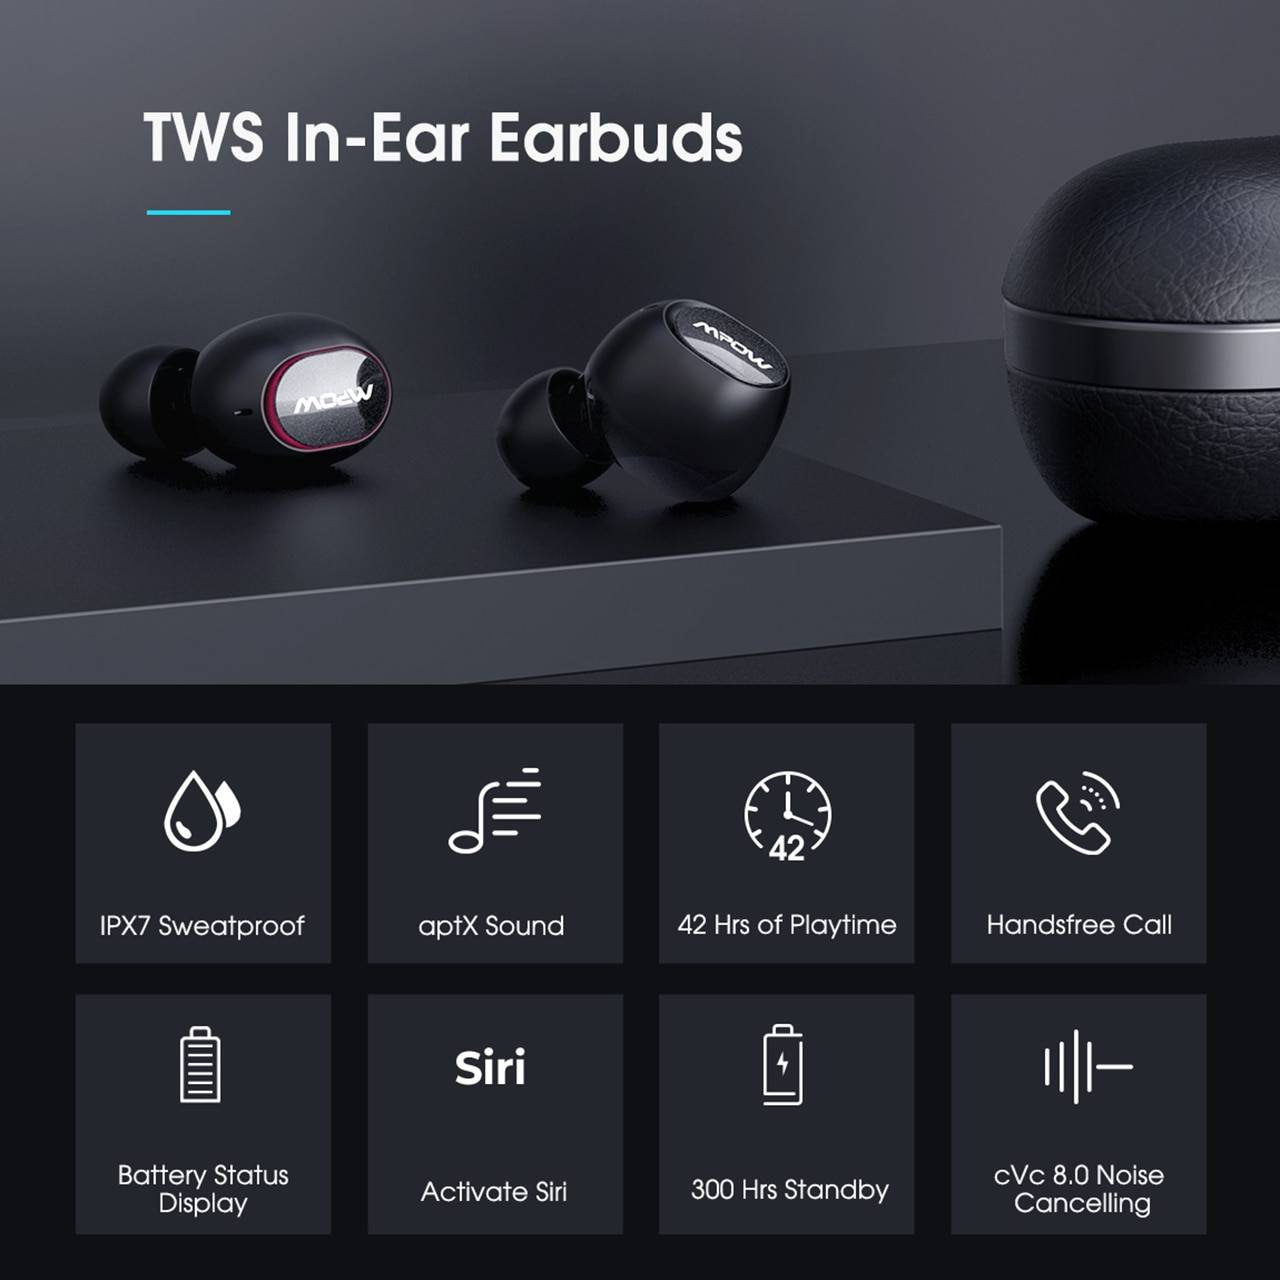 Wireless Earbuds for Android/Windows/iOS Earphones & Headphones 1ef722433d607dd9d2b8b7: Ships from China Ships from USA